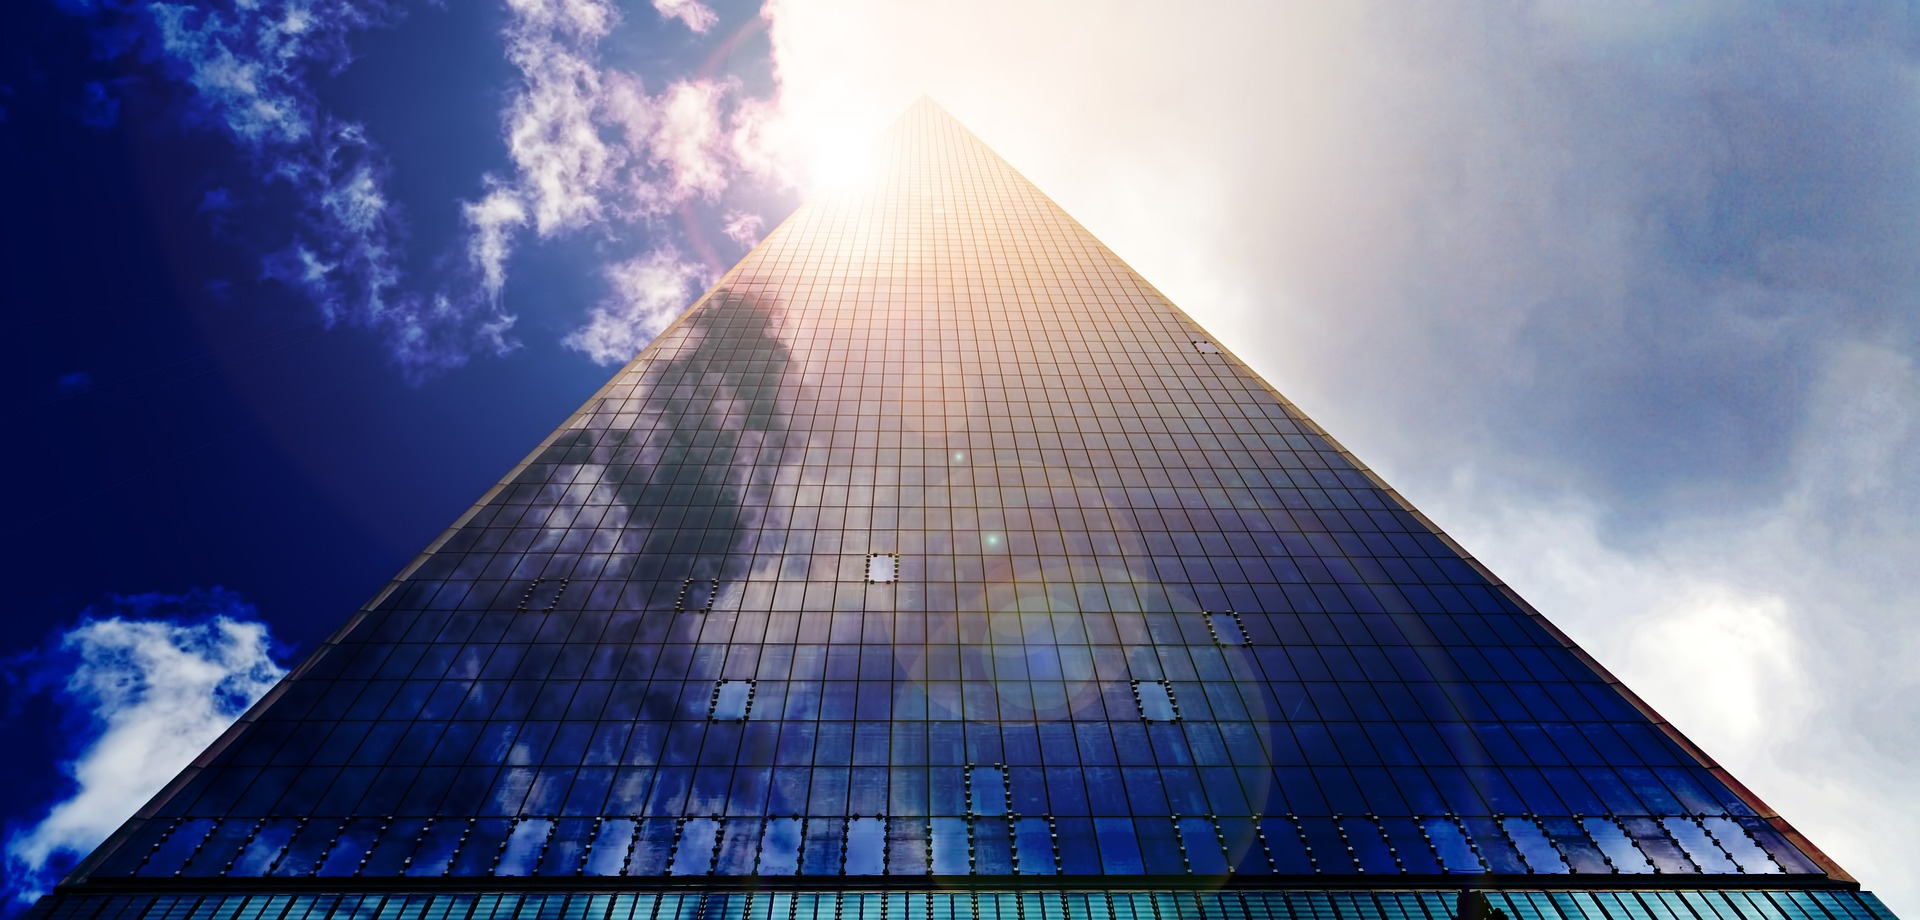 Glass Windows on Buildings Could Soon be Generating Electric Power